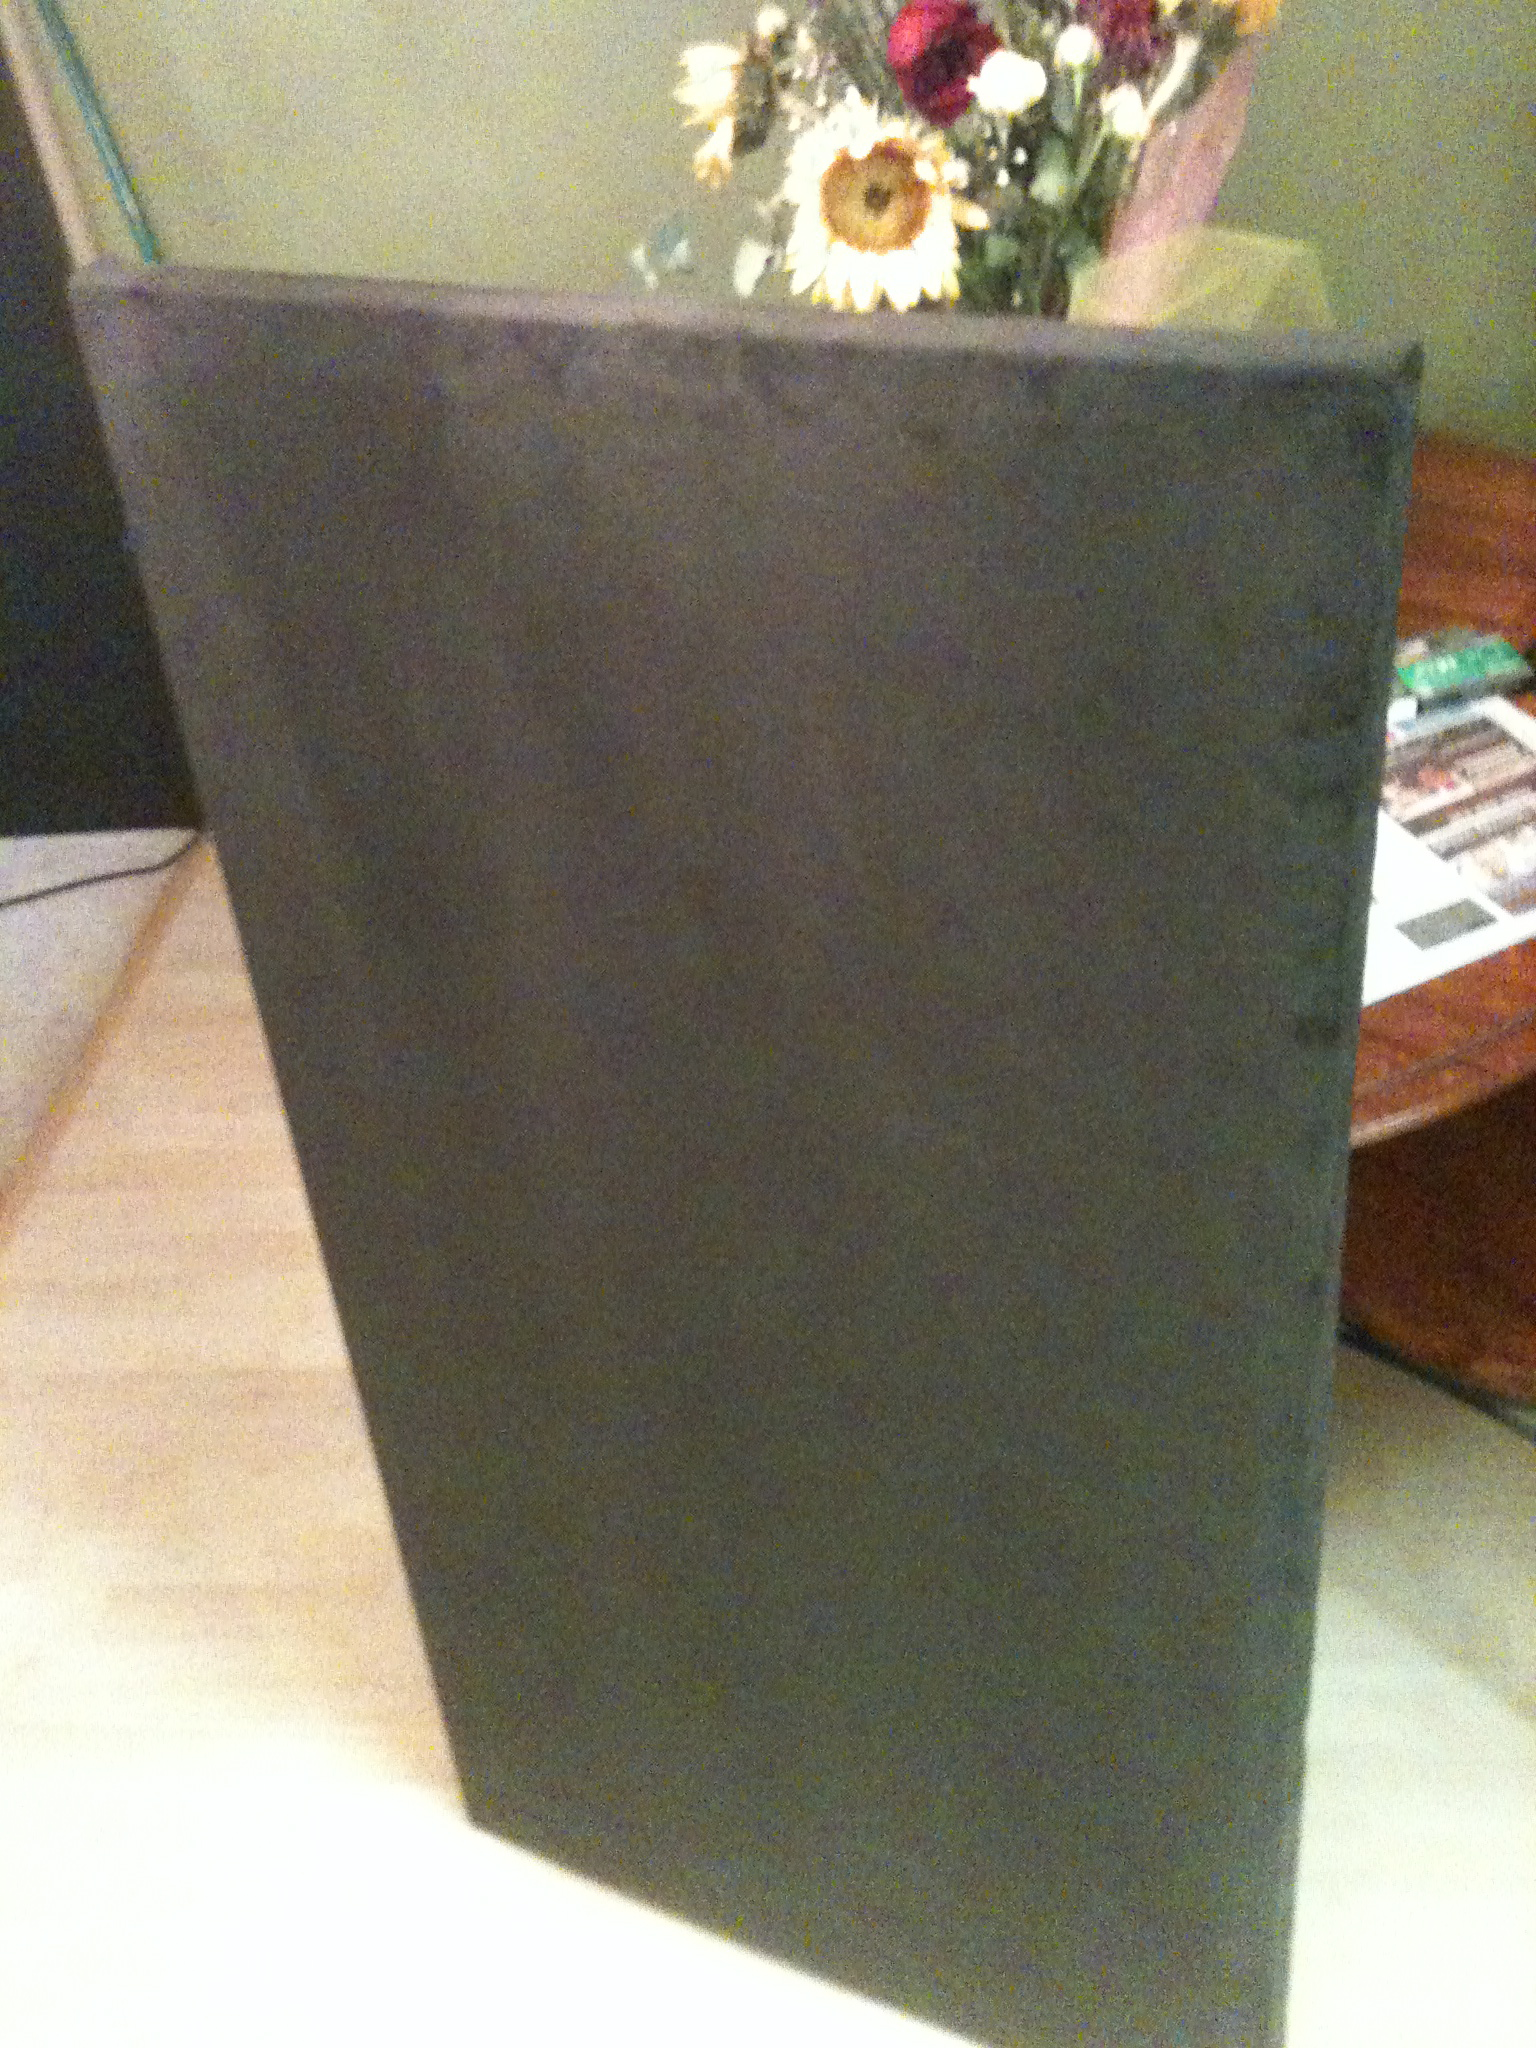 My Diy Portable Vocal Booth Is Complete Gearslutz Pro